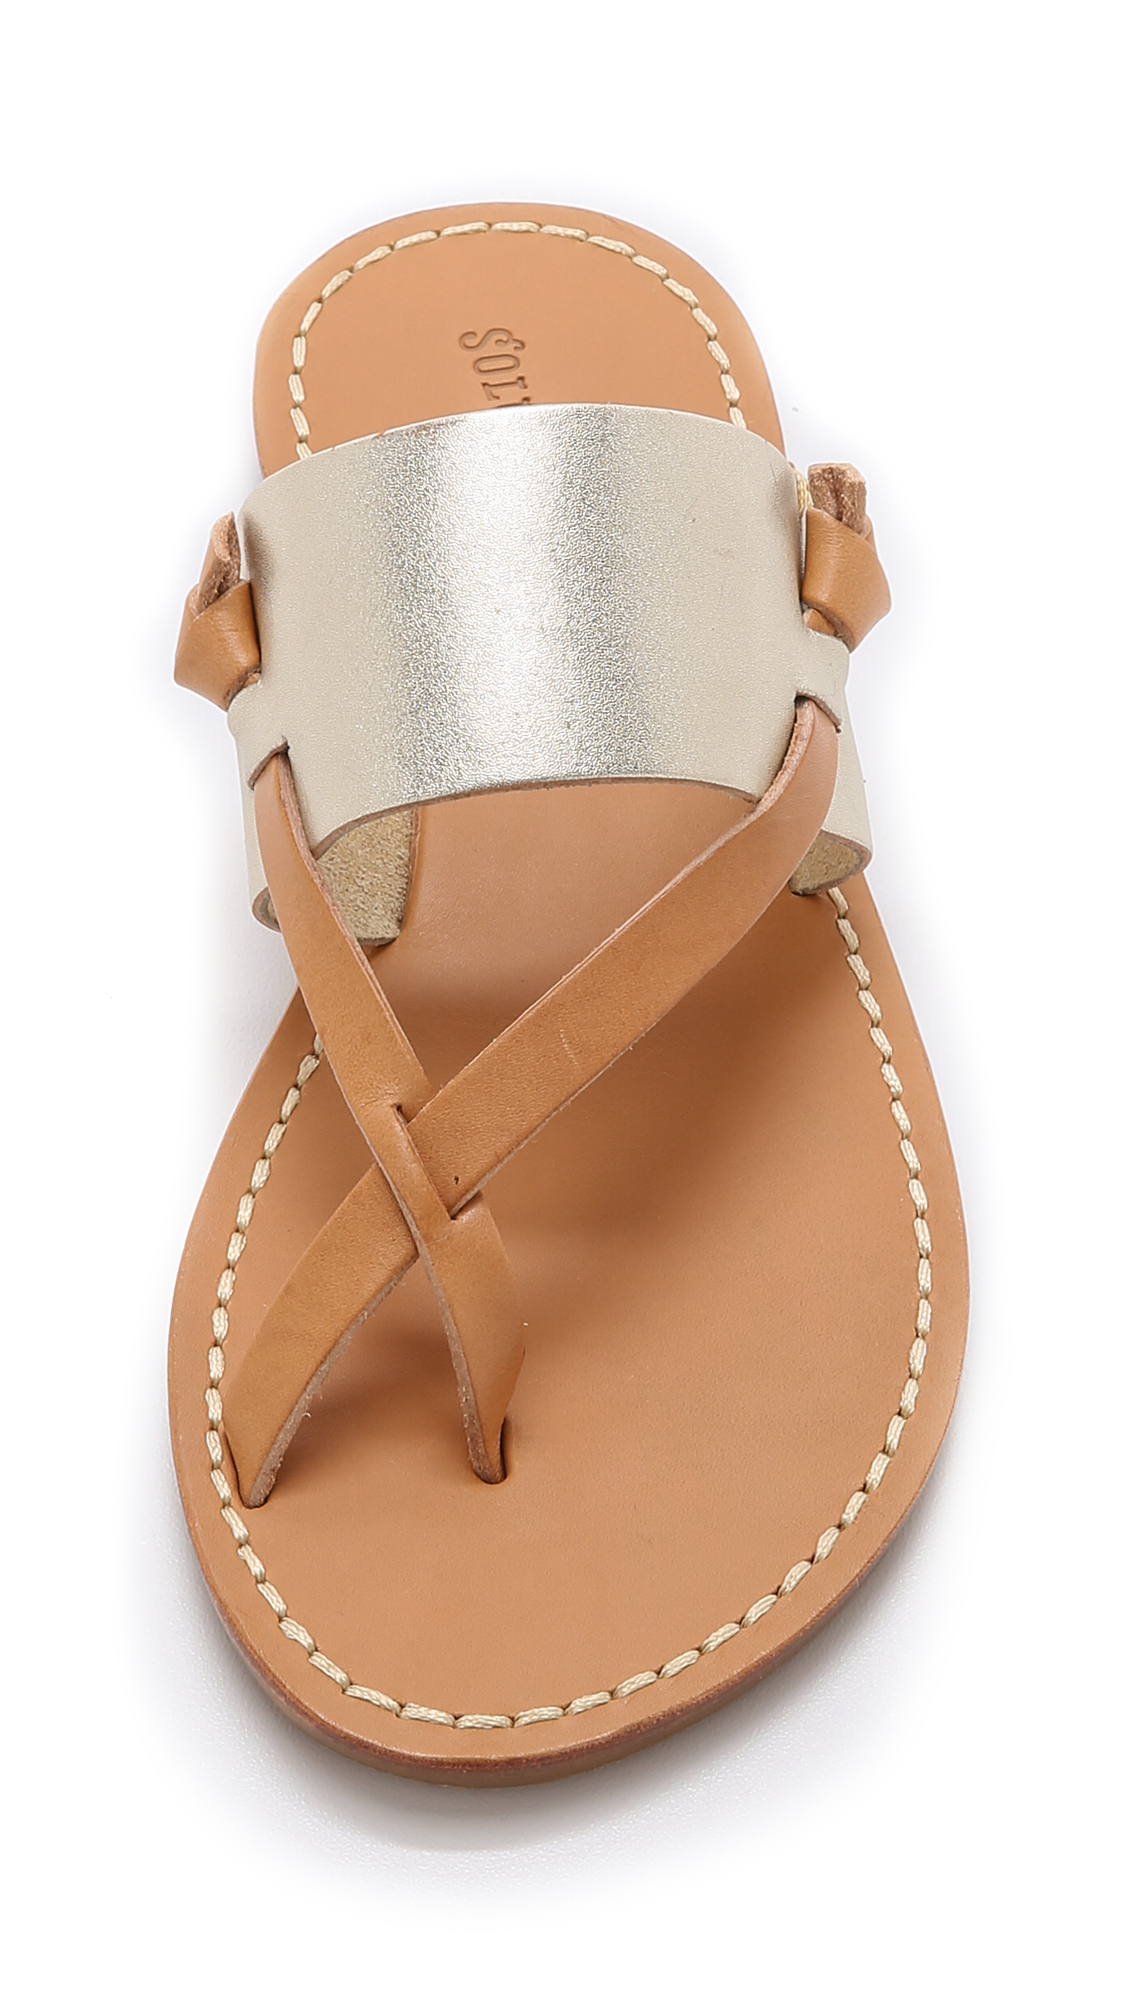 077f66a5a1b8 Soludos Slotted Thong Sandals